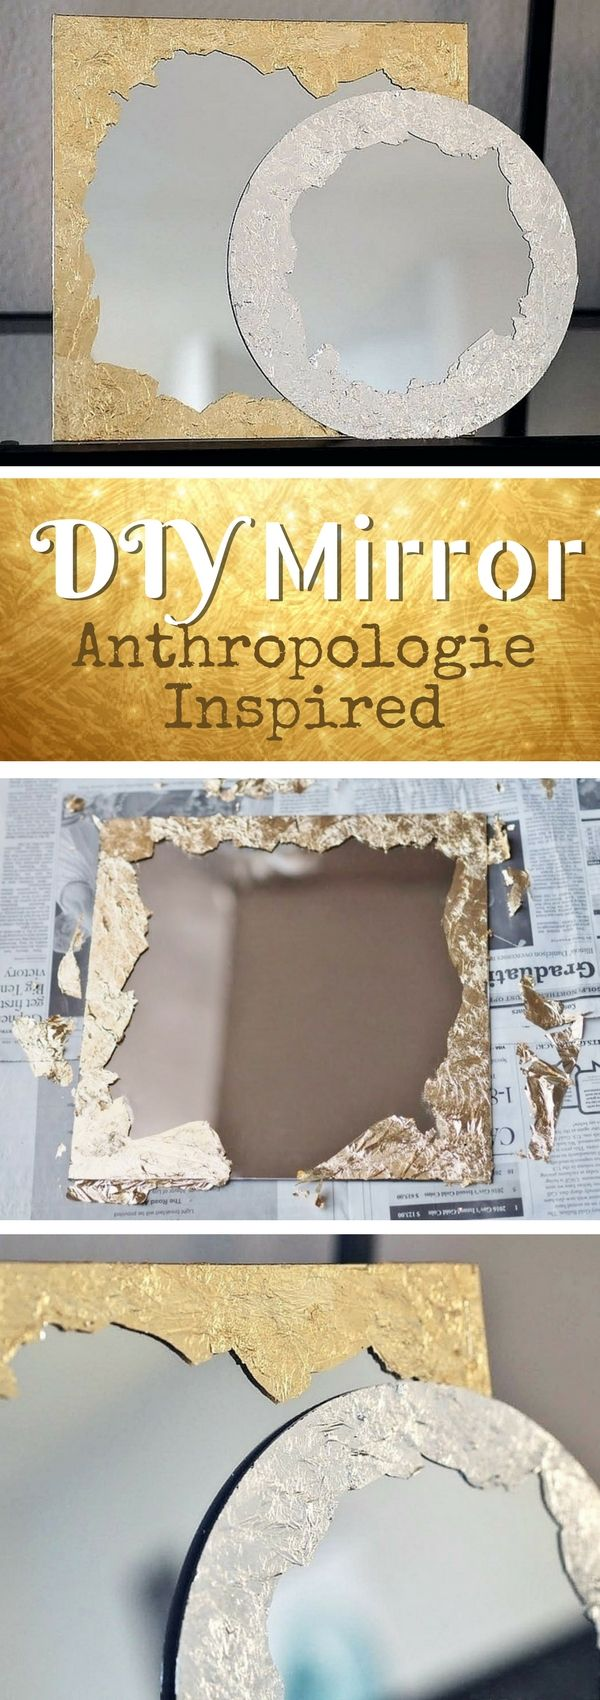 Check out how to make DIY Anthropologie inspired plated brushstroke mirrors @istandarddesign